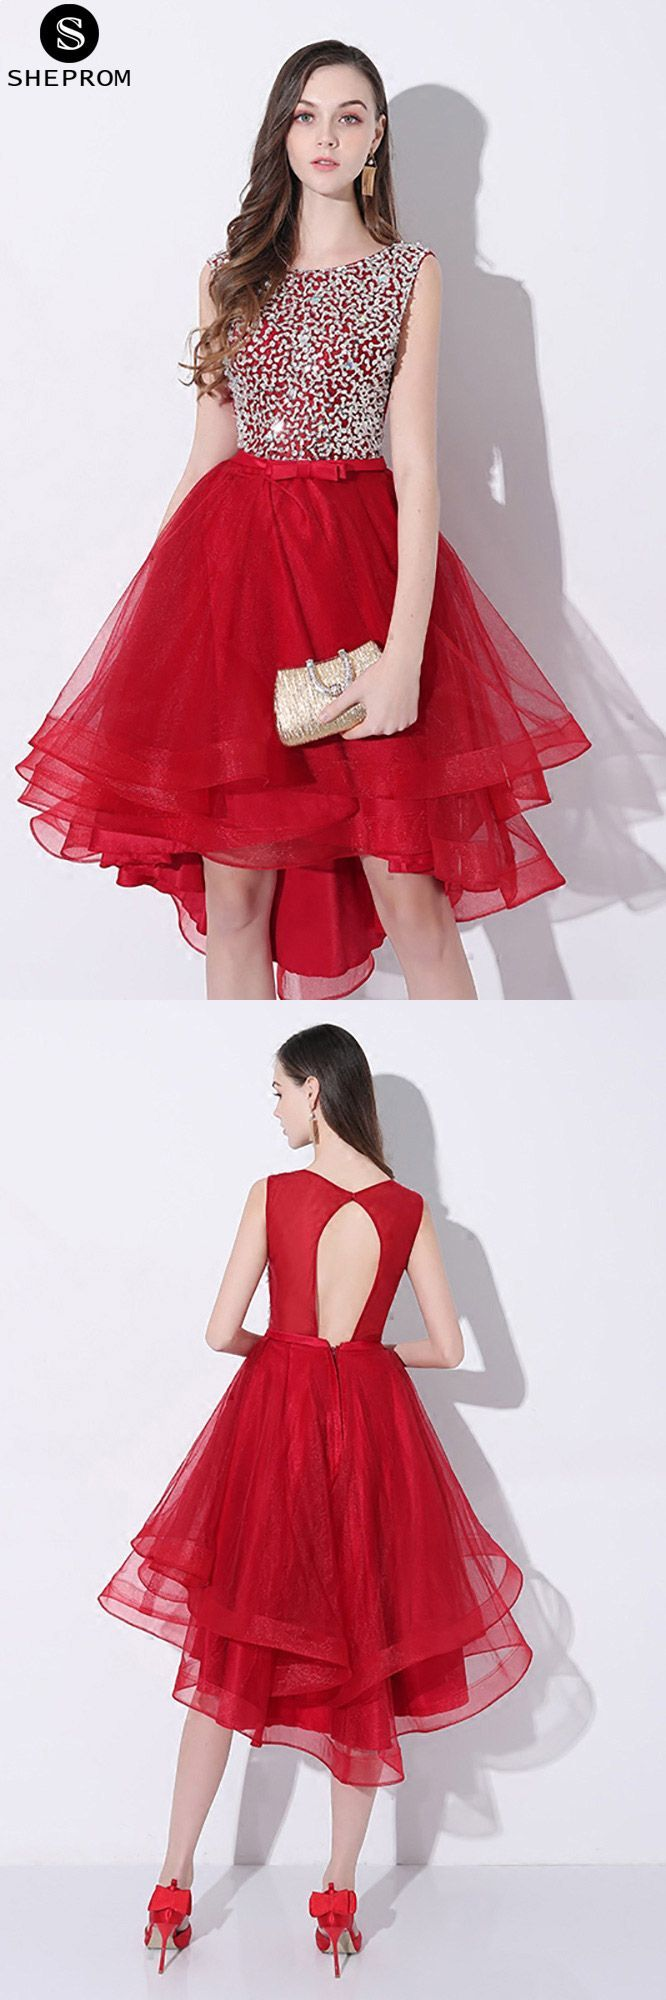 Sparkly sequins red short prom homecoming dress high low with open